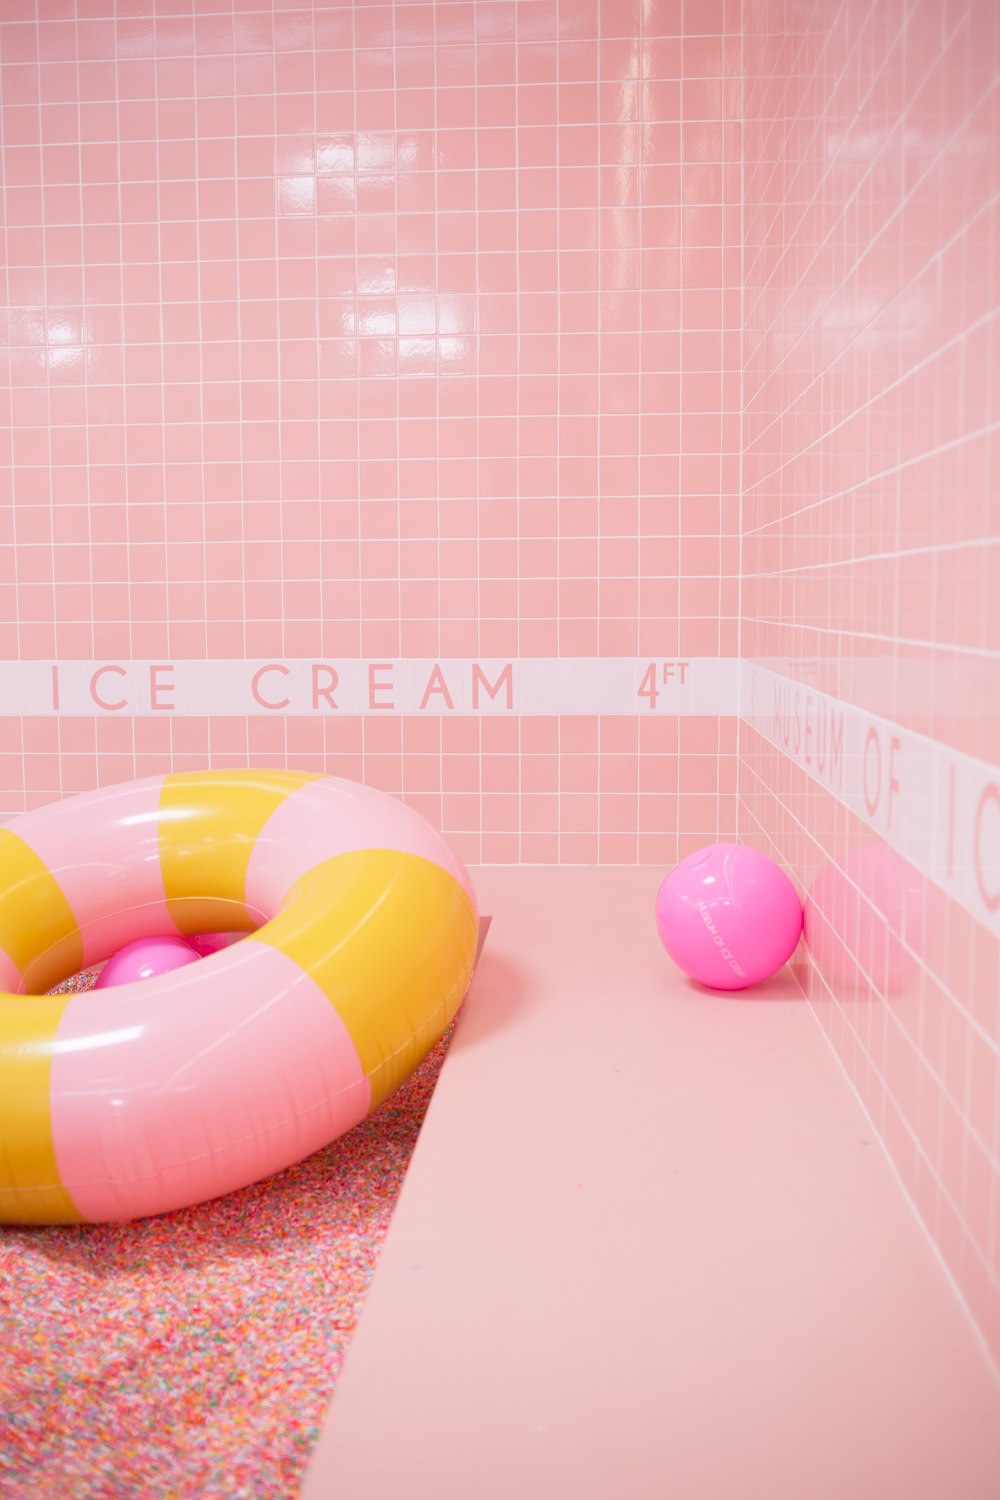 Photograph all of the pool floats & subway tile dreams